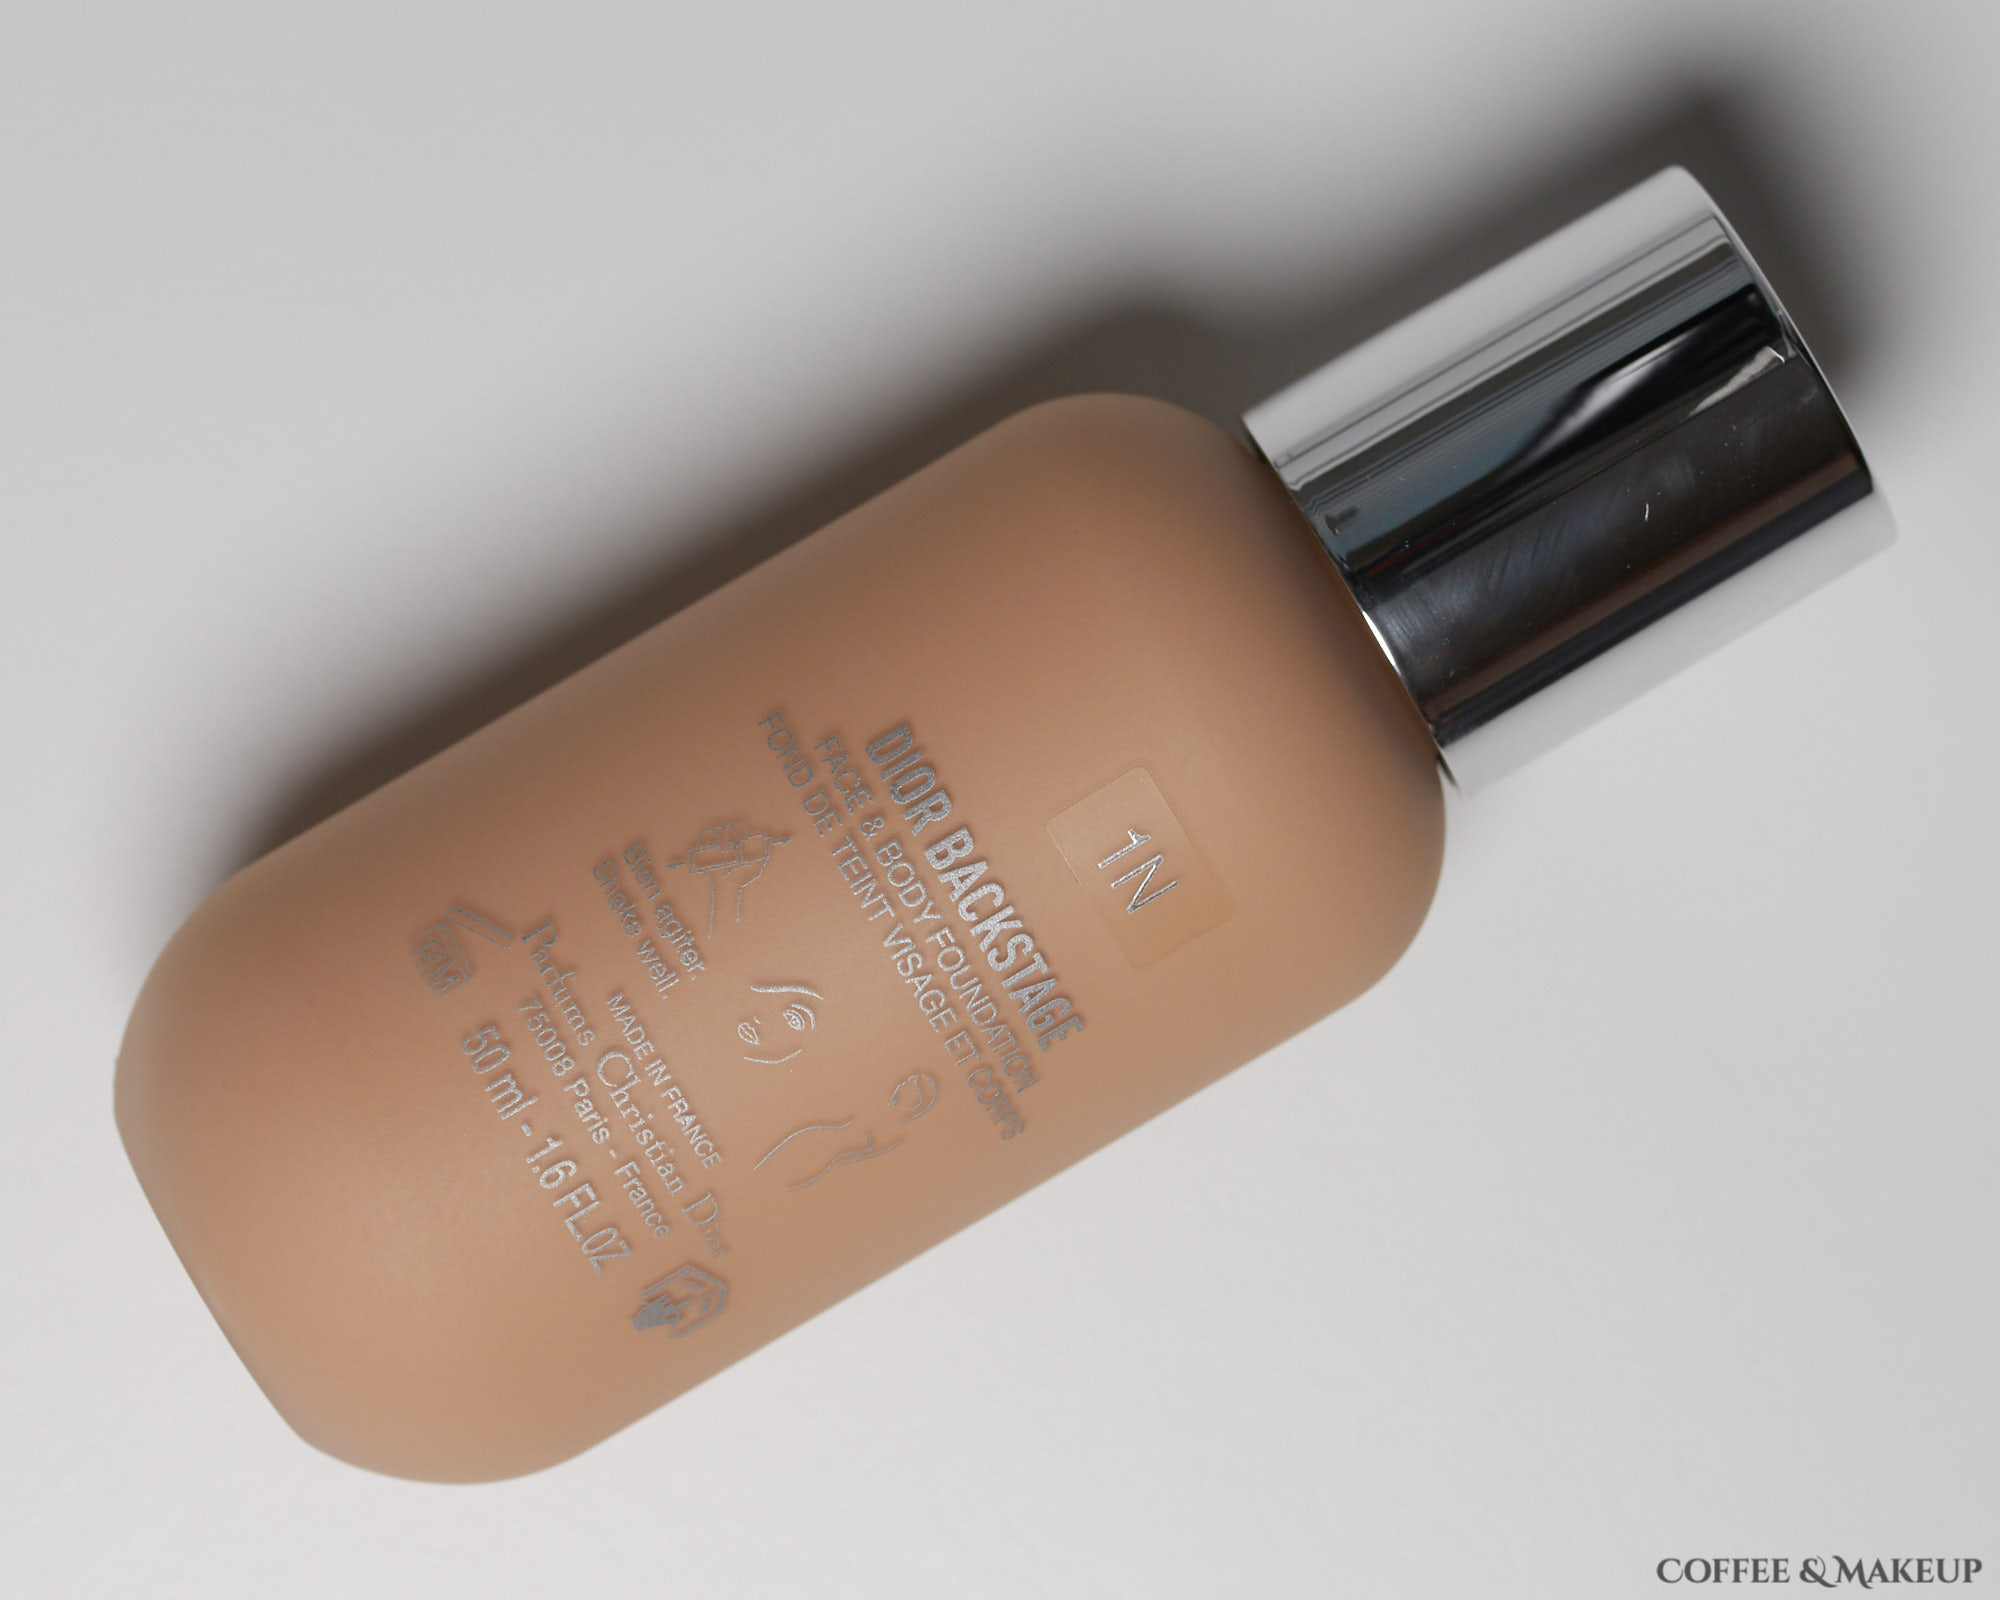 1N | Dior Backstage Face and Body Foundation